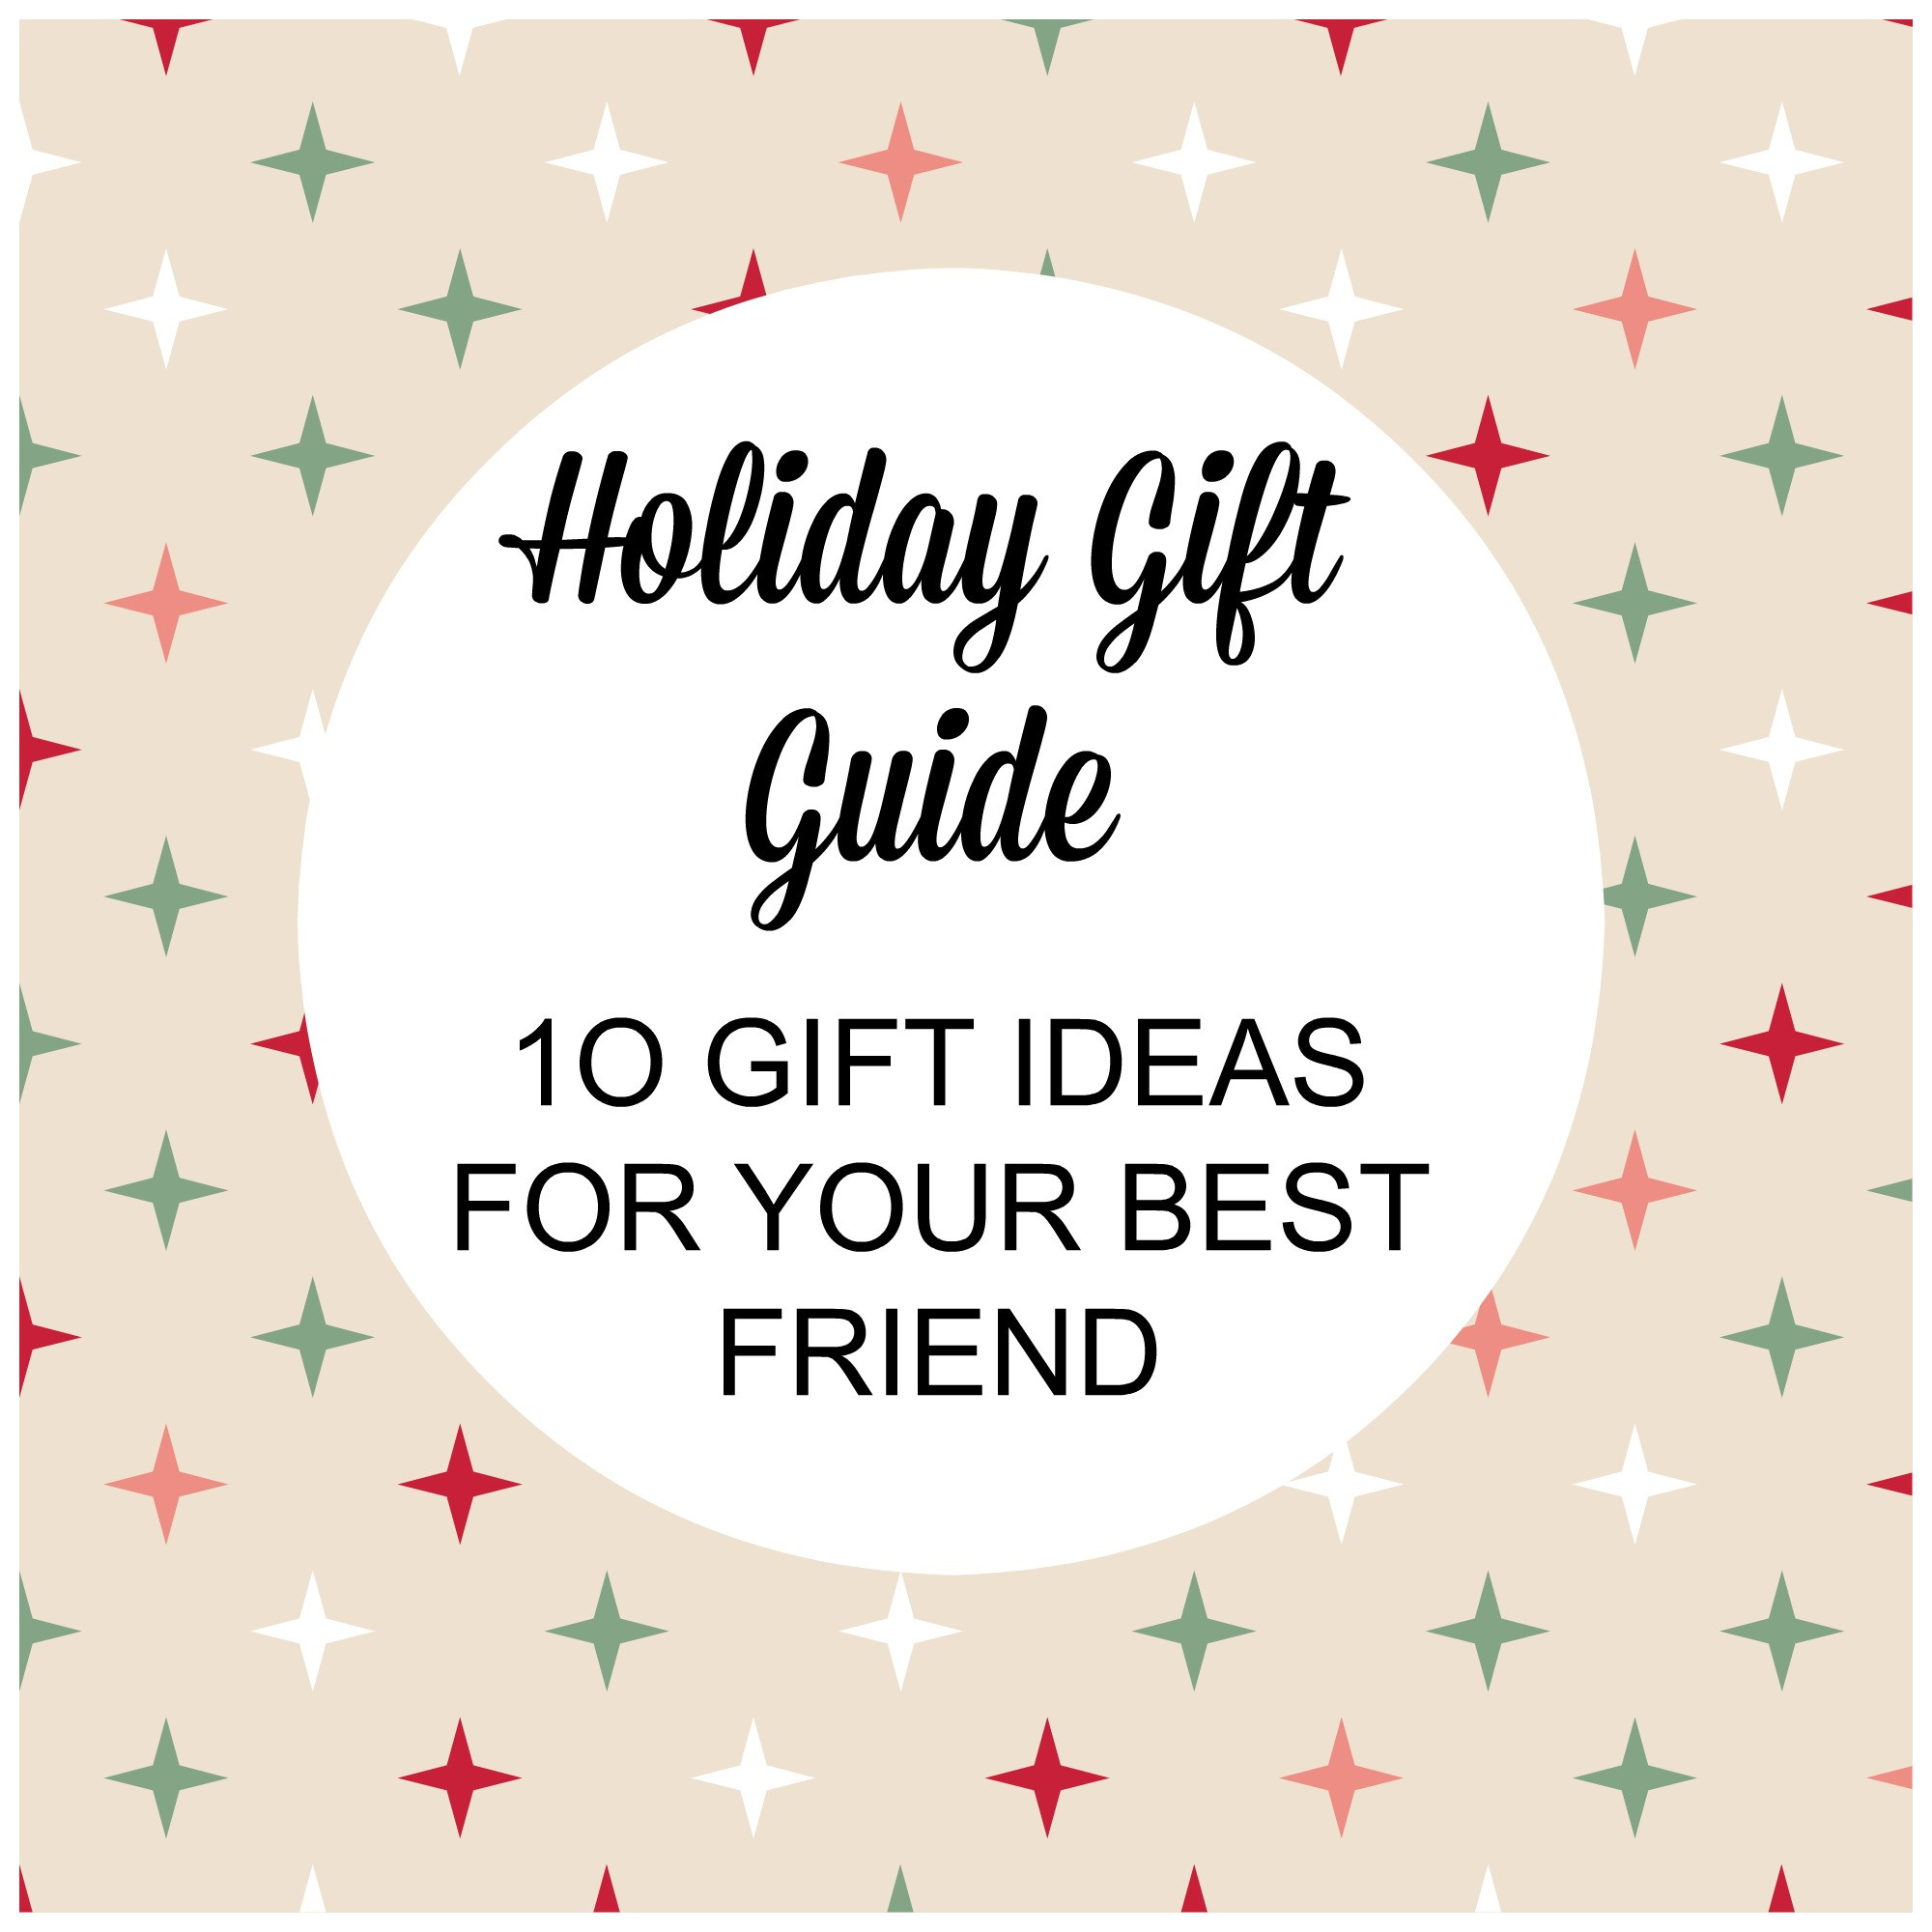 Best ideas about Christmas Gift Ideas For Your Best Friends . Save or Pin Holiday Gift Guide 10 Gift Ideas for your Best Friend Now.